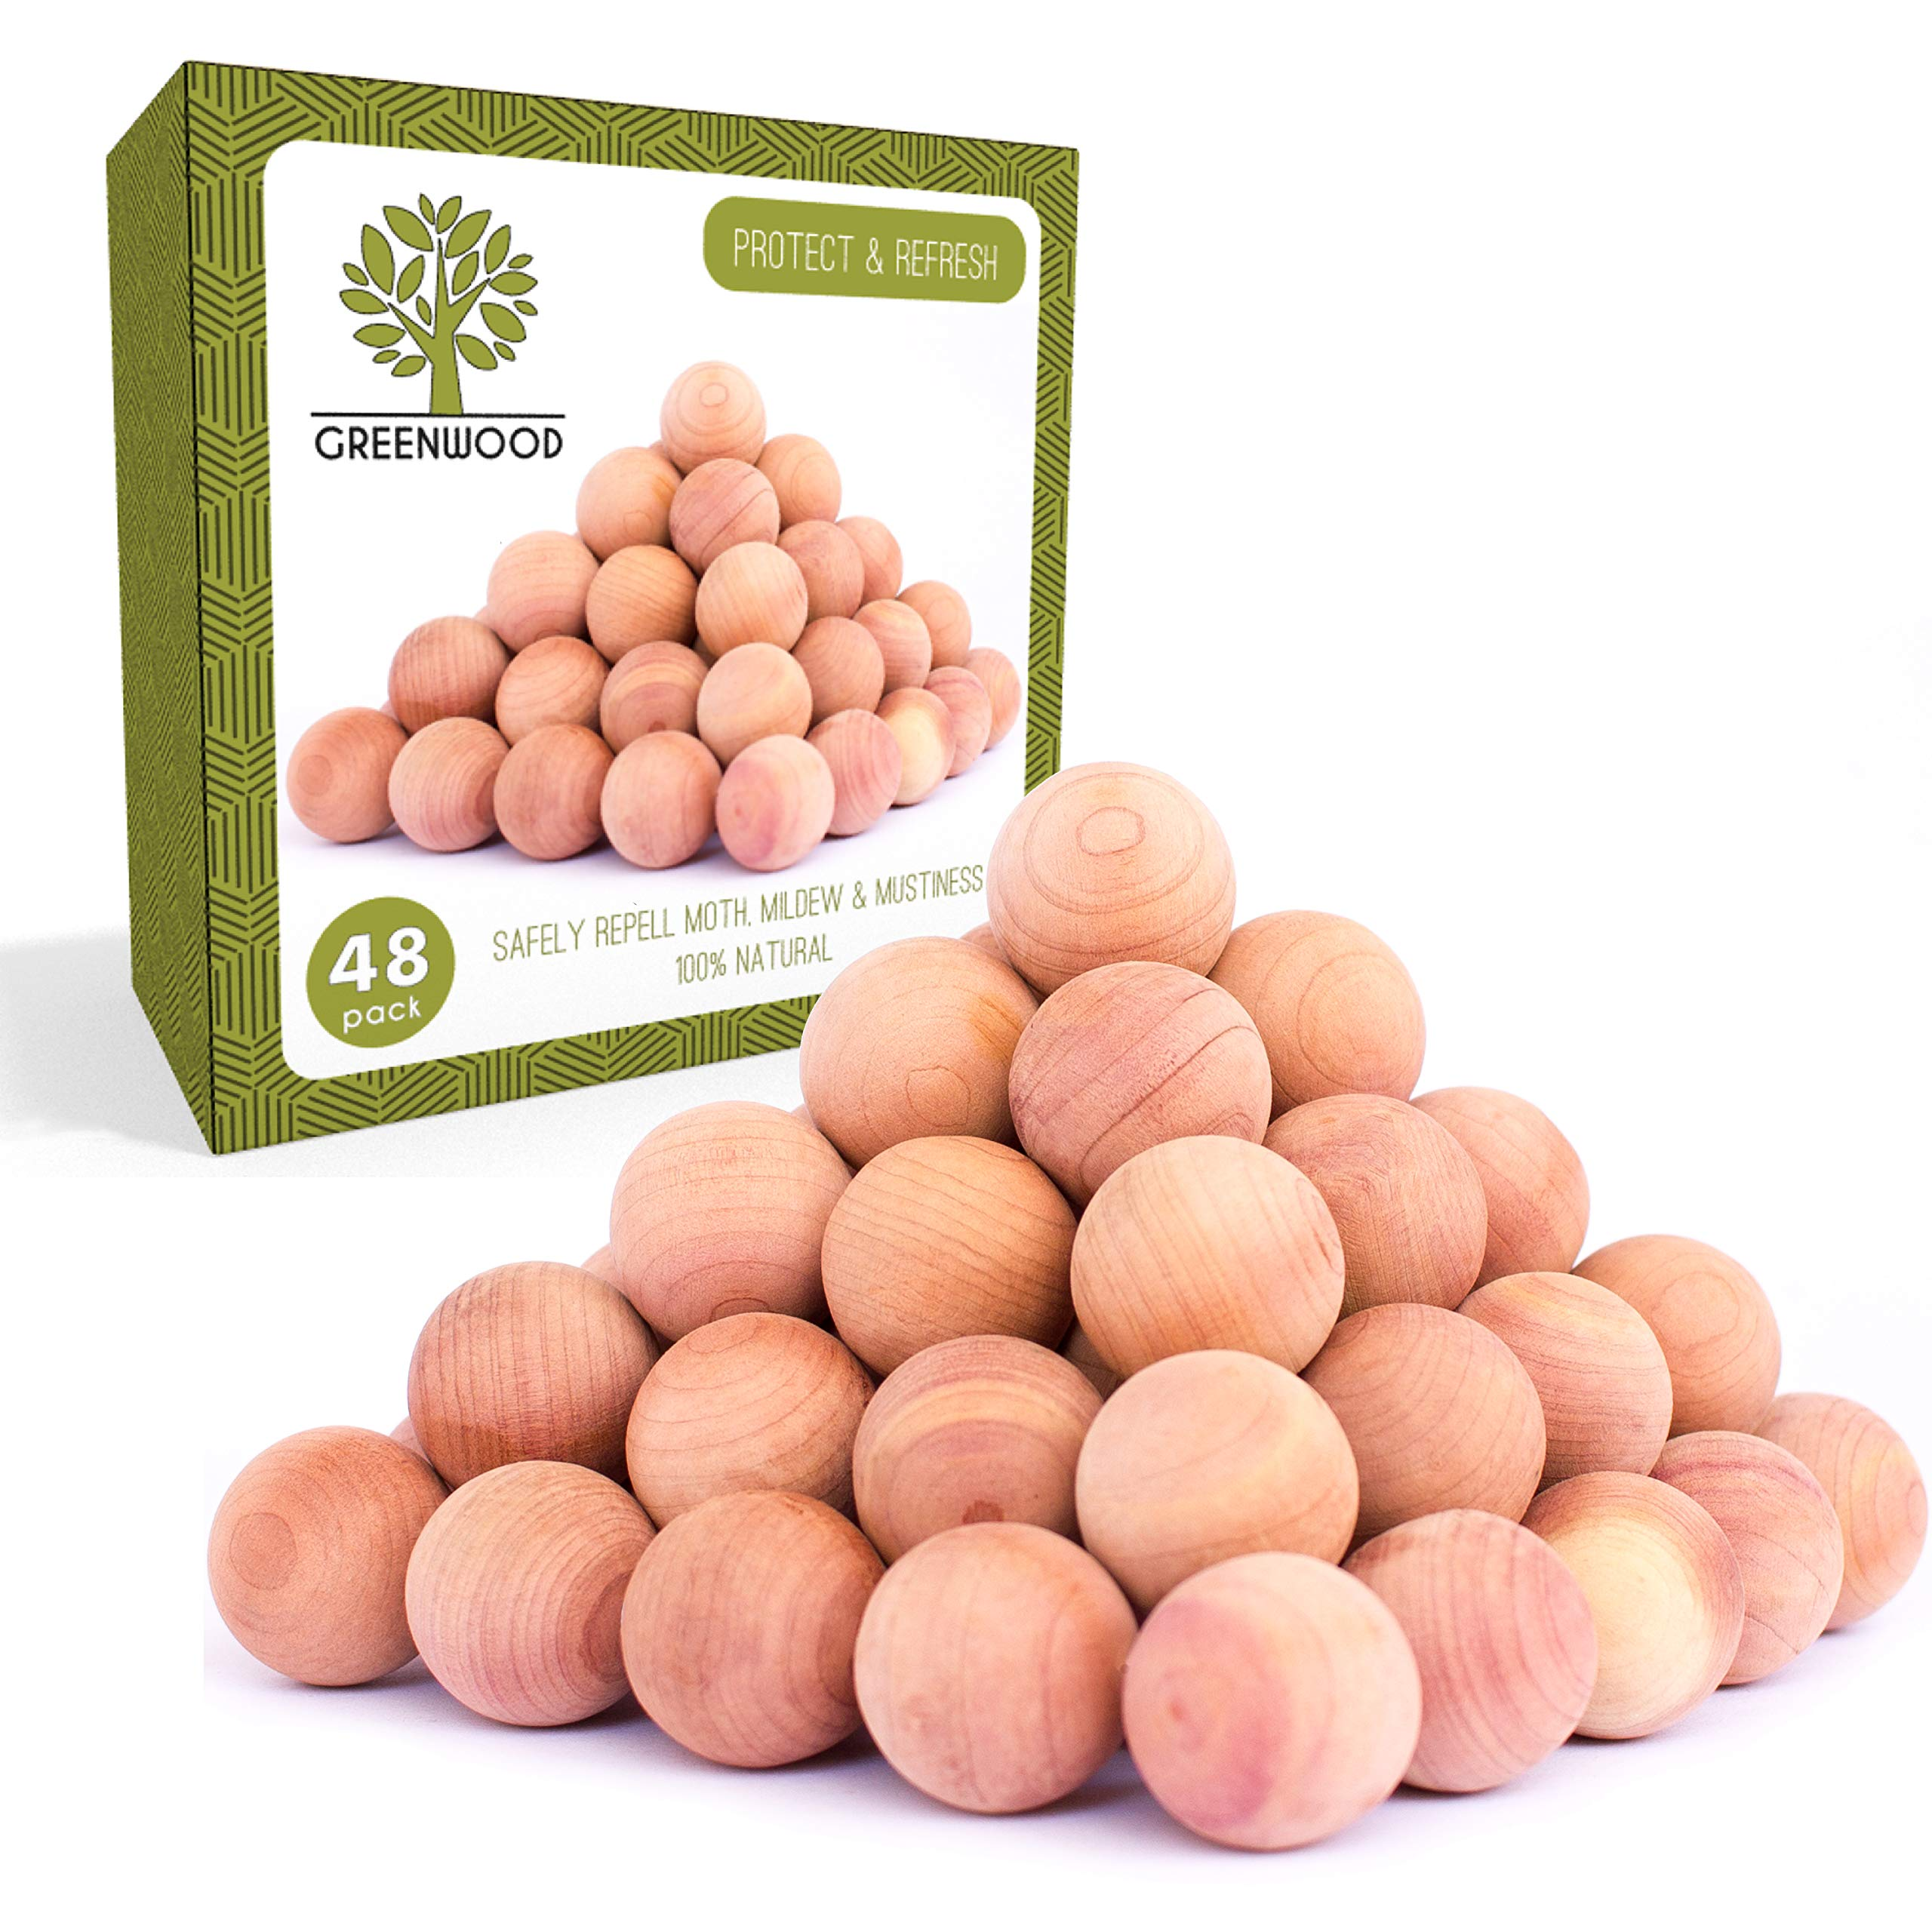 Powerful 100% Natural Anti Moth Balls   Organic Repellent for Clothes Moth & Pantry Pest Killer   Best Clothes Storage Protection Odor Eliminator - Refresh & Protect with Cedar Aromatic Oil   48 pack